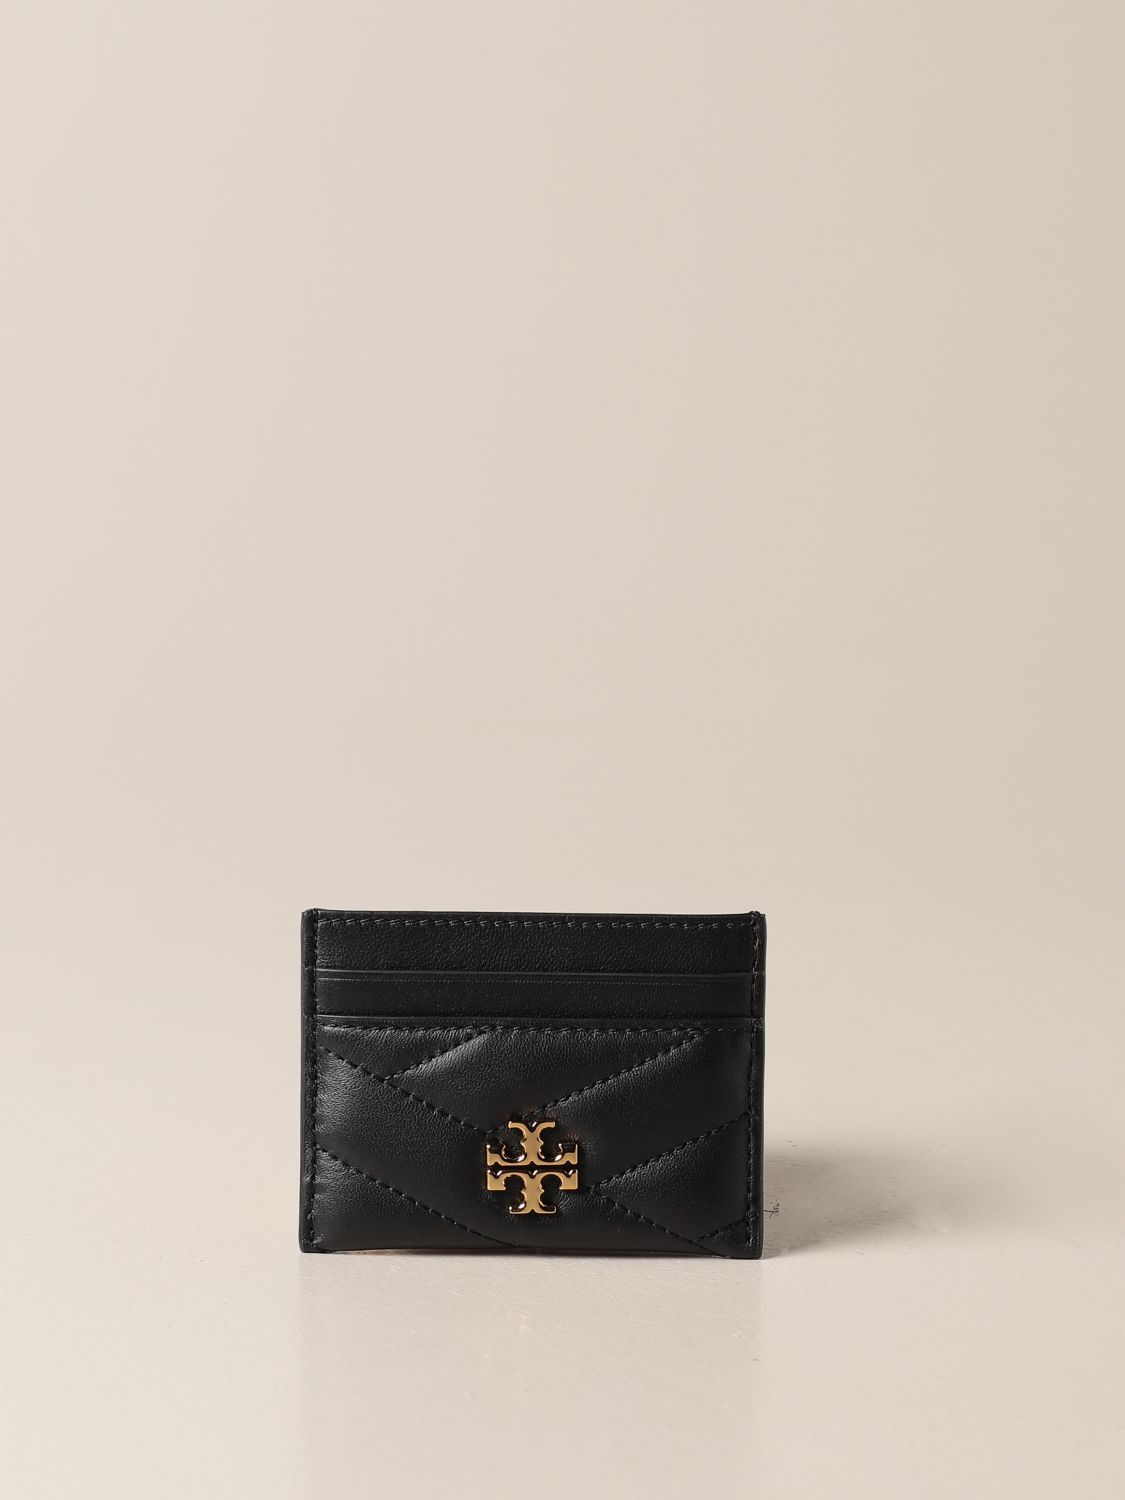 Wallet Tory Burch: Tory Burch credit card holder in quilted leather with metallic emblem black 1